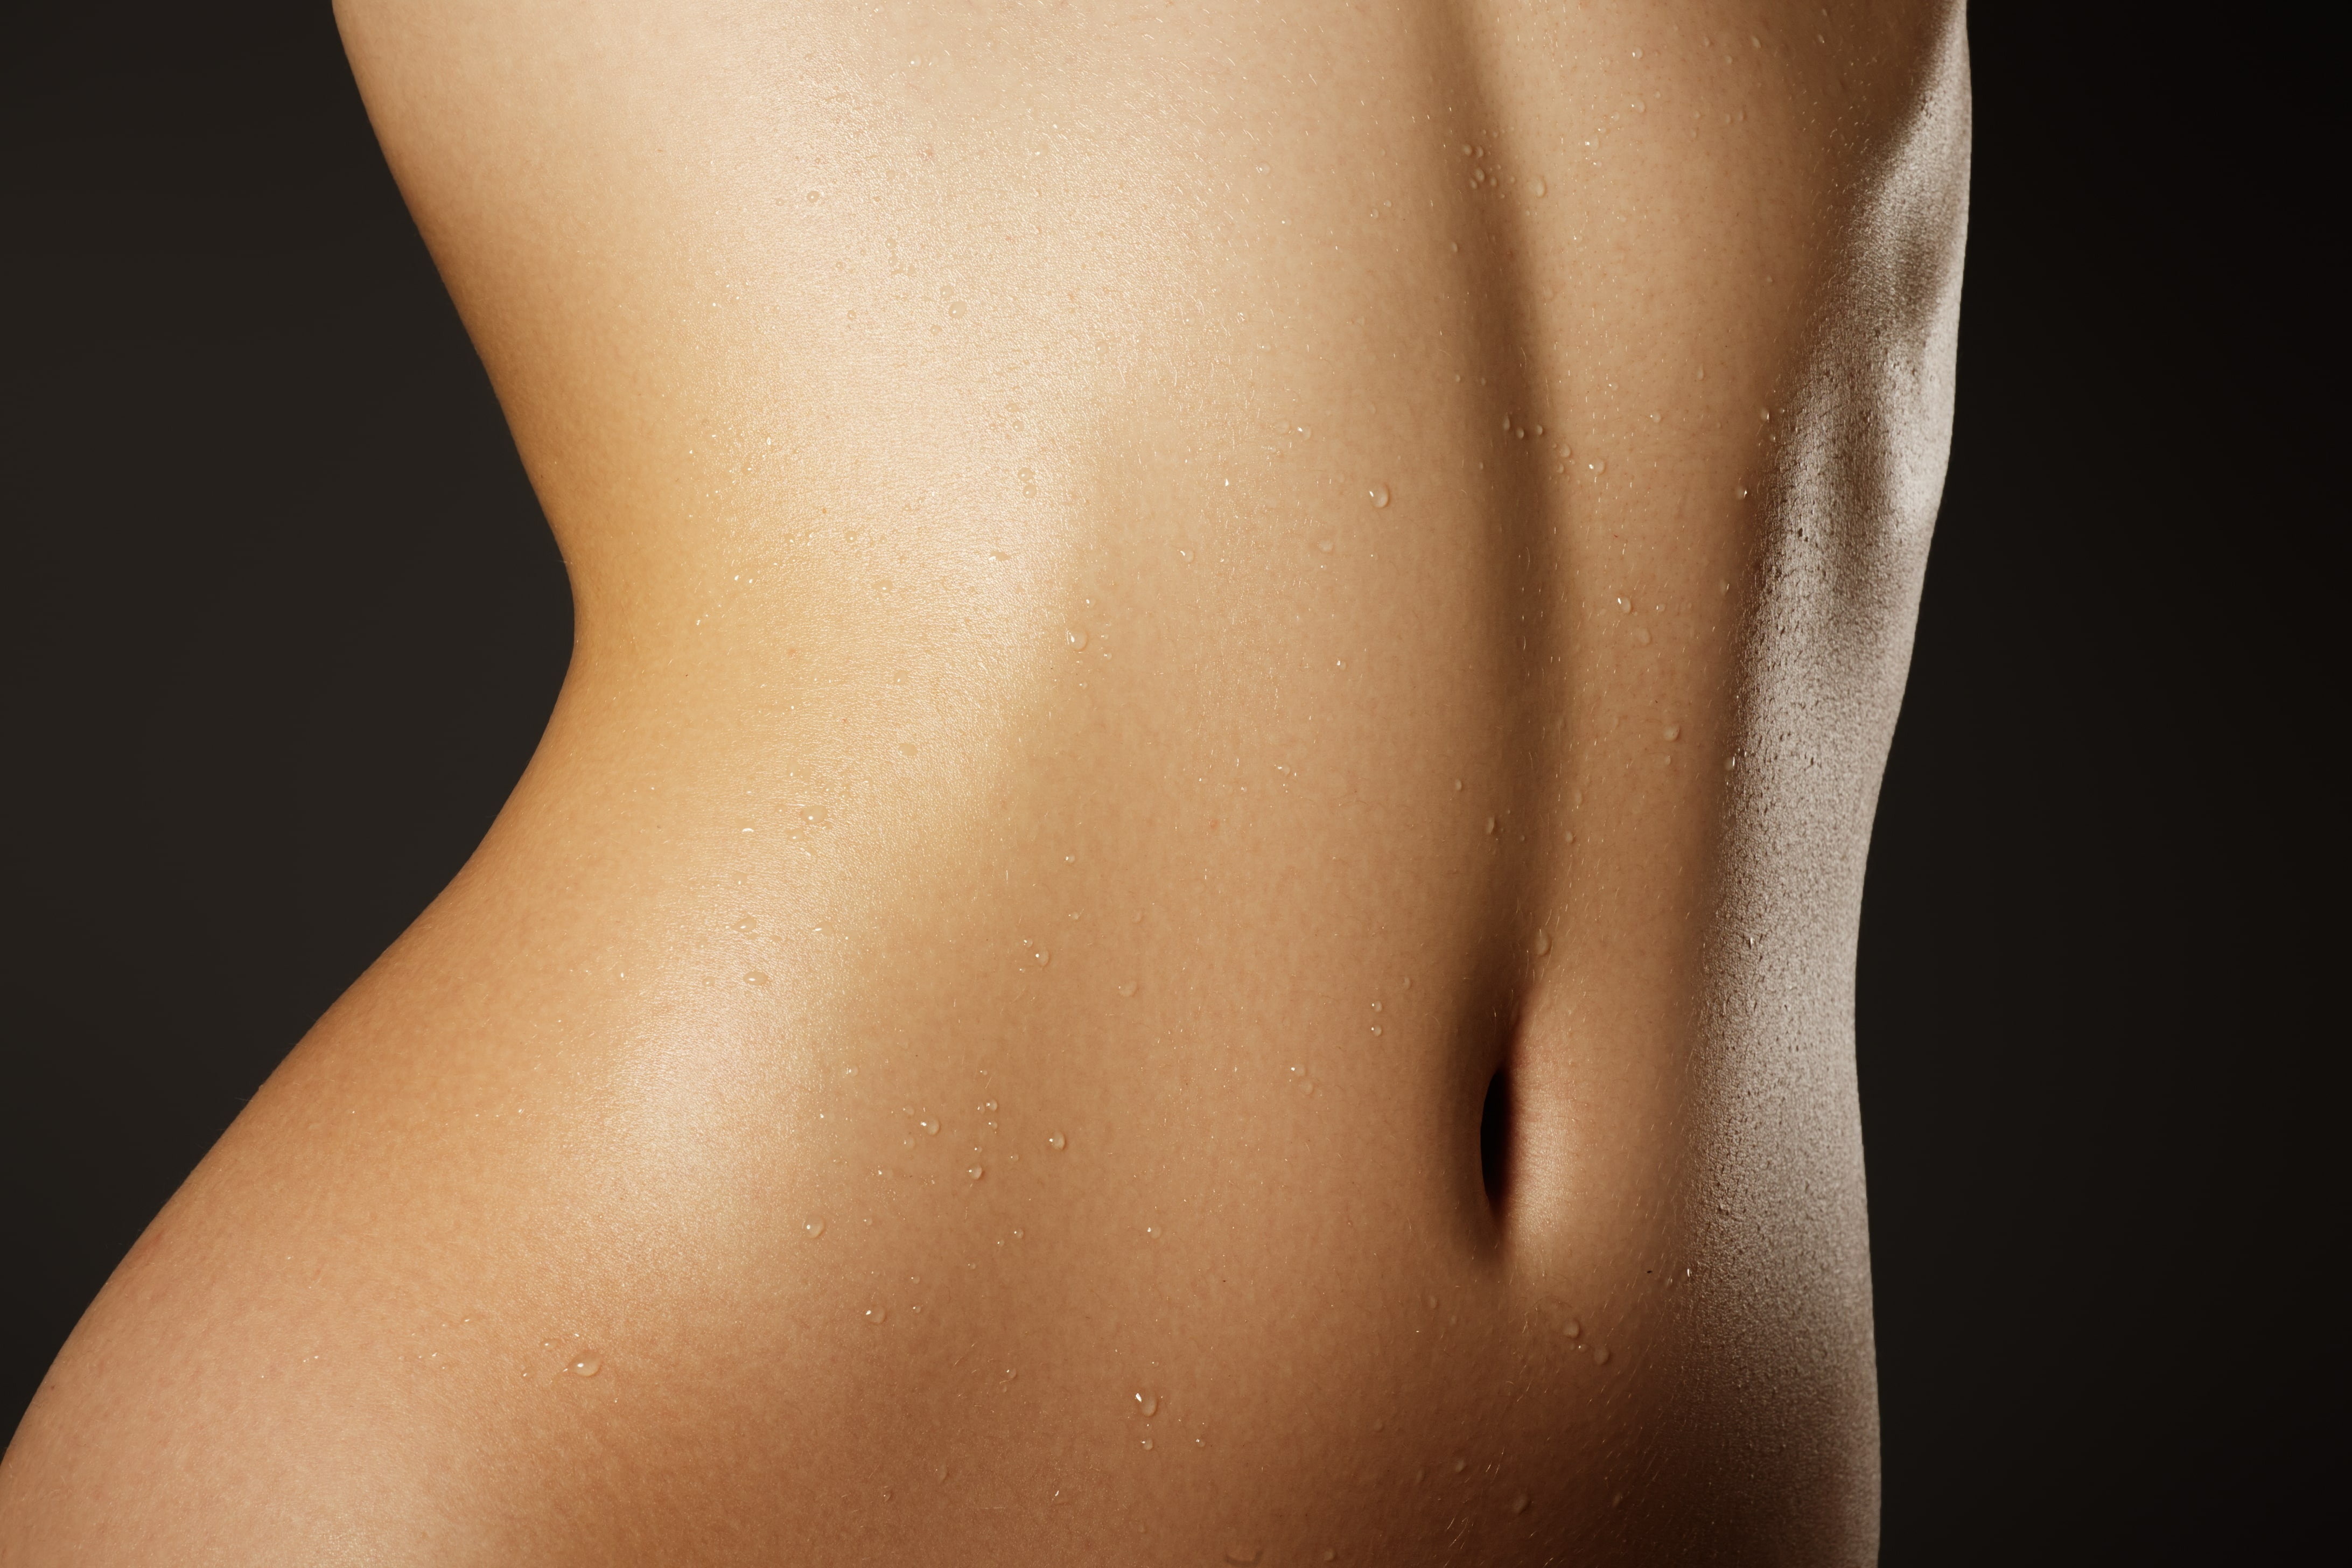 tummy-tuck-min Body Contouring In Scottsdale